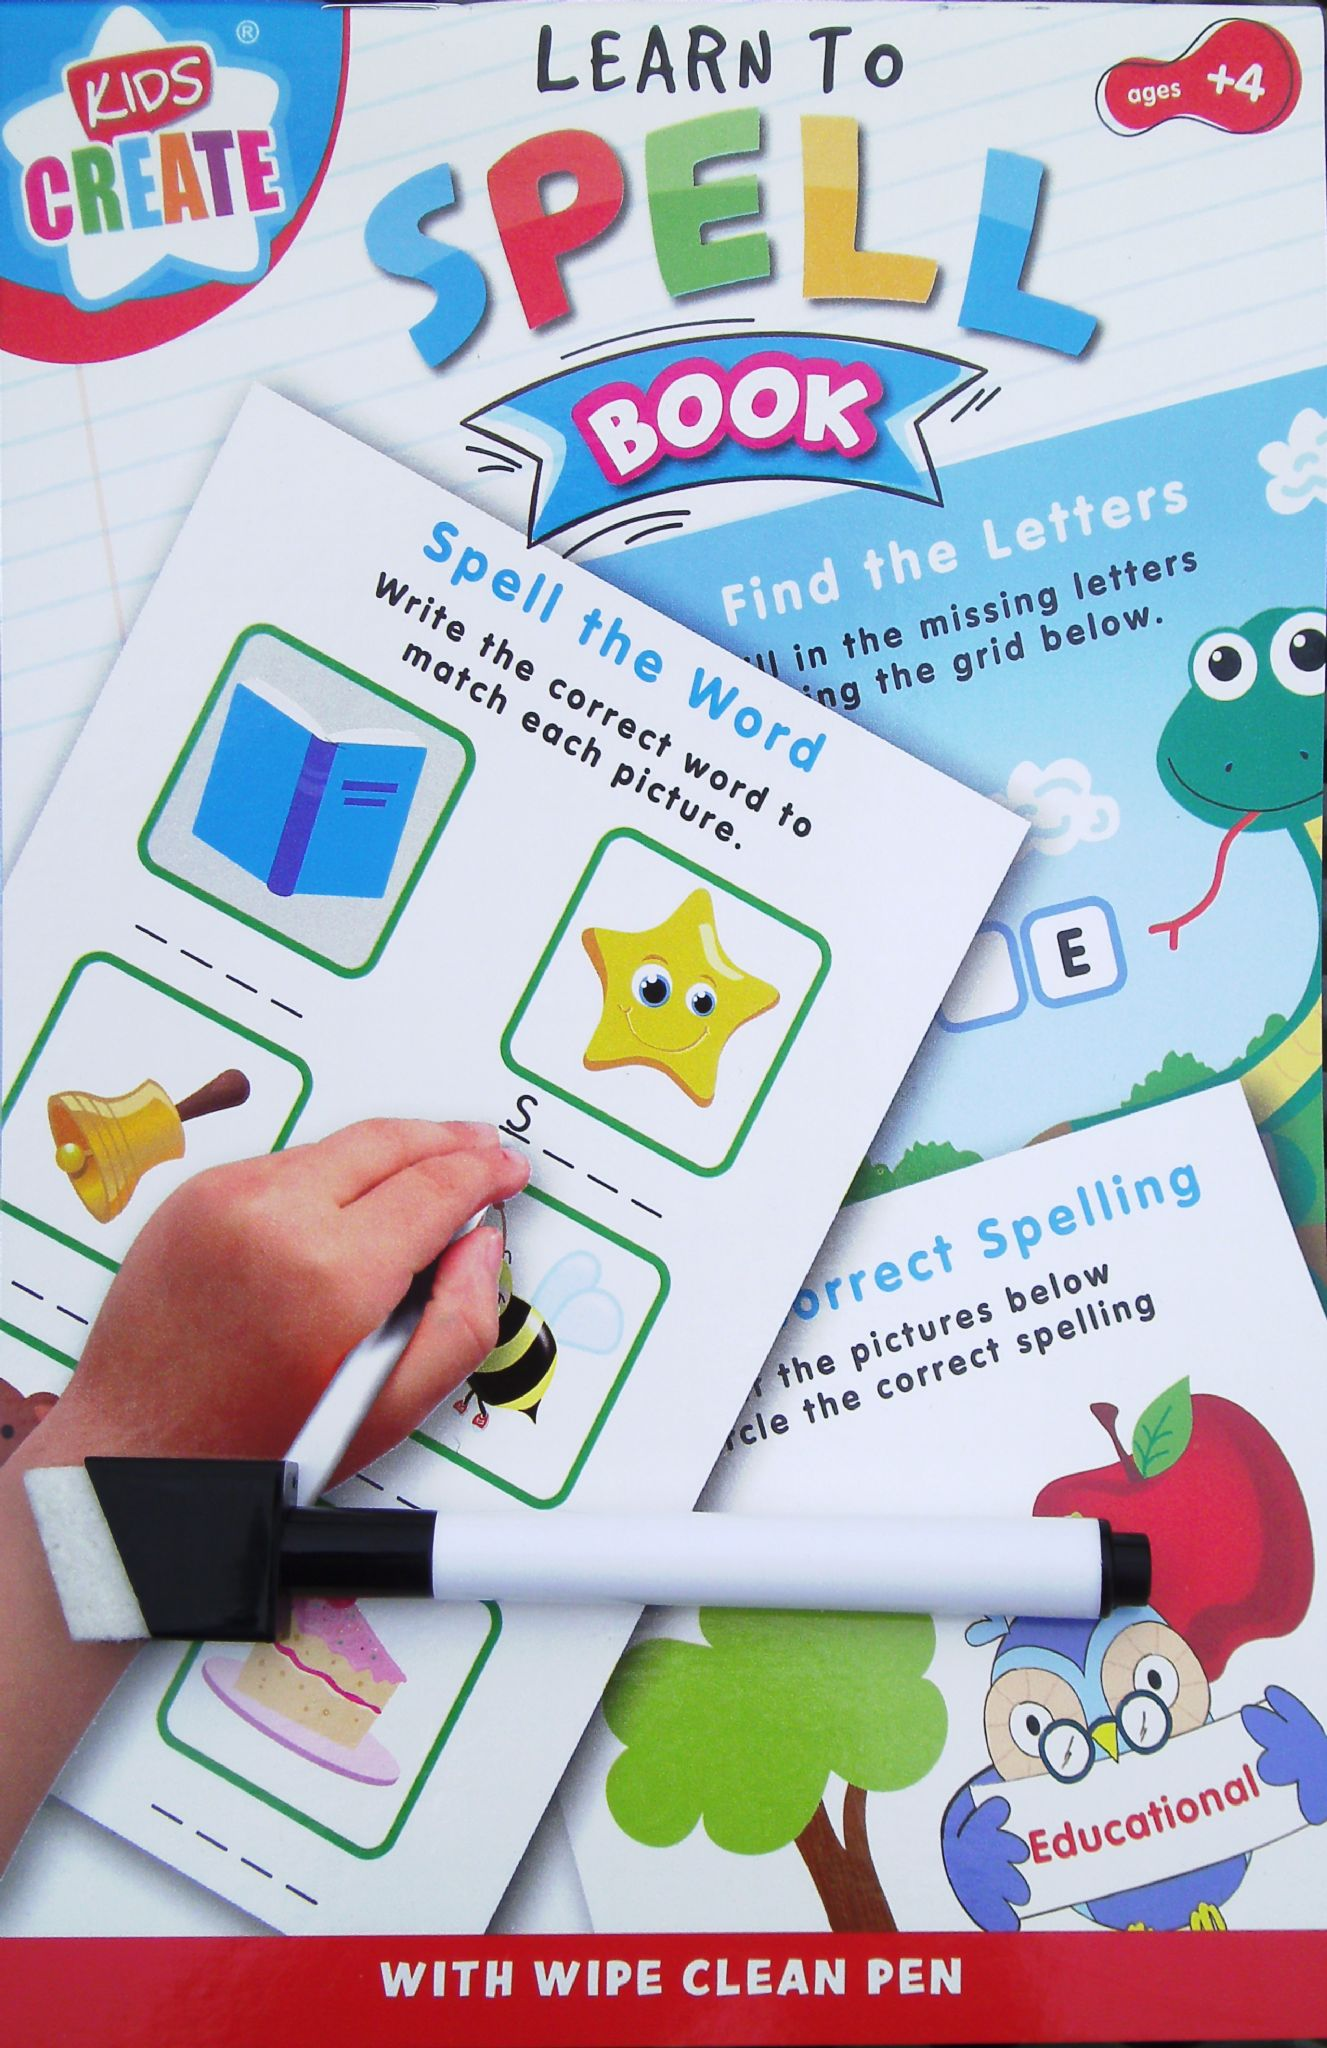 Learn To Educational Wipe Clean Book Spelling Worksheets